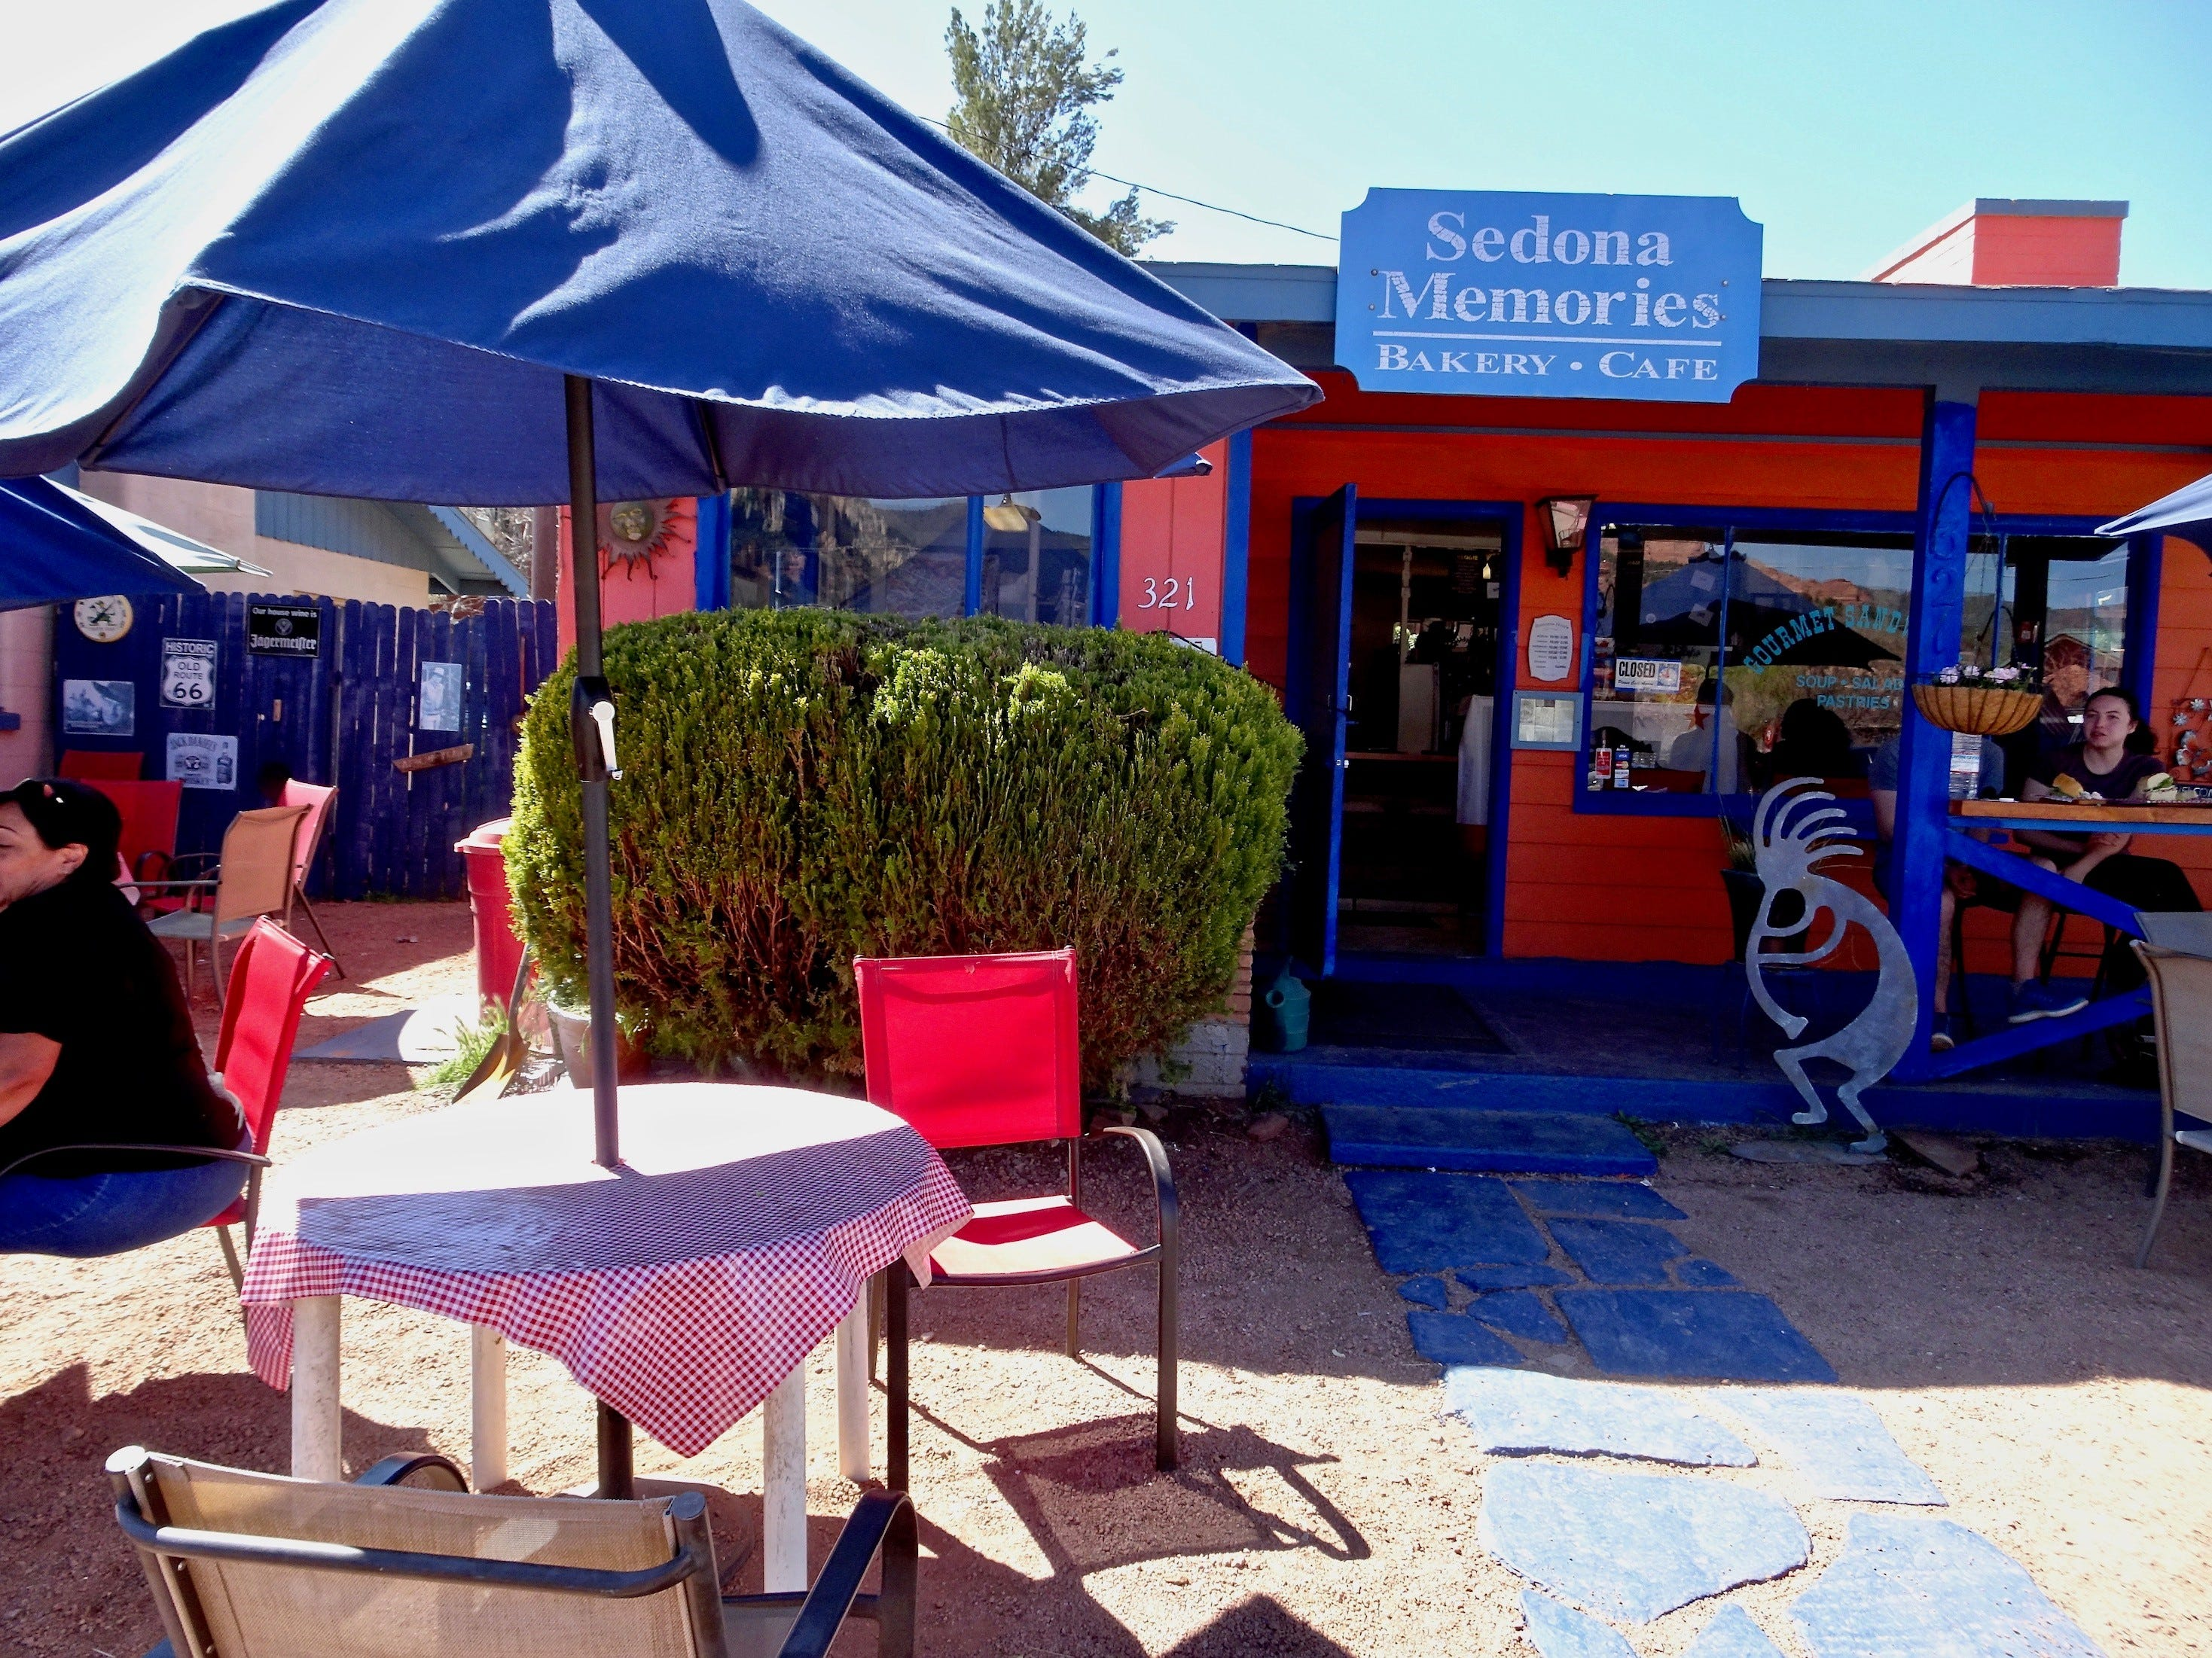 Sedona Memories has sandwiches you can eat on the patio or take with you for a picnic.